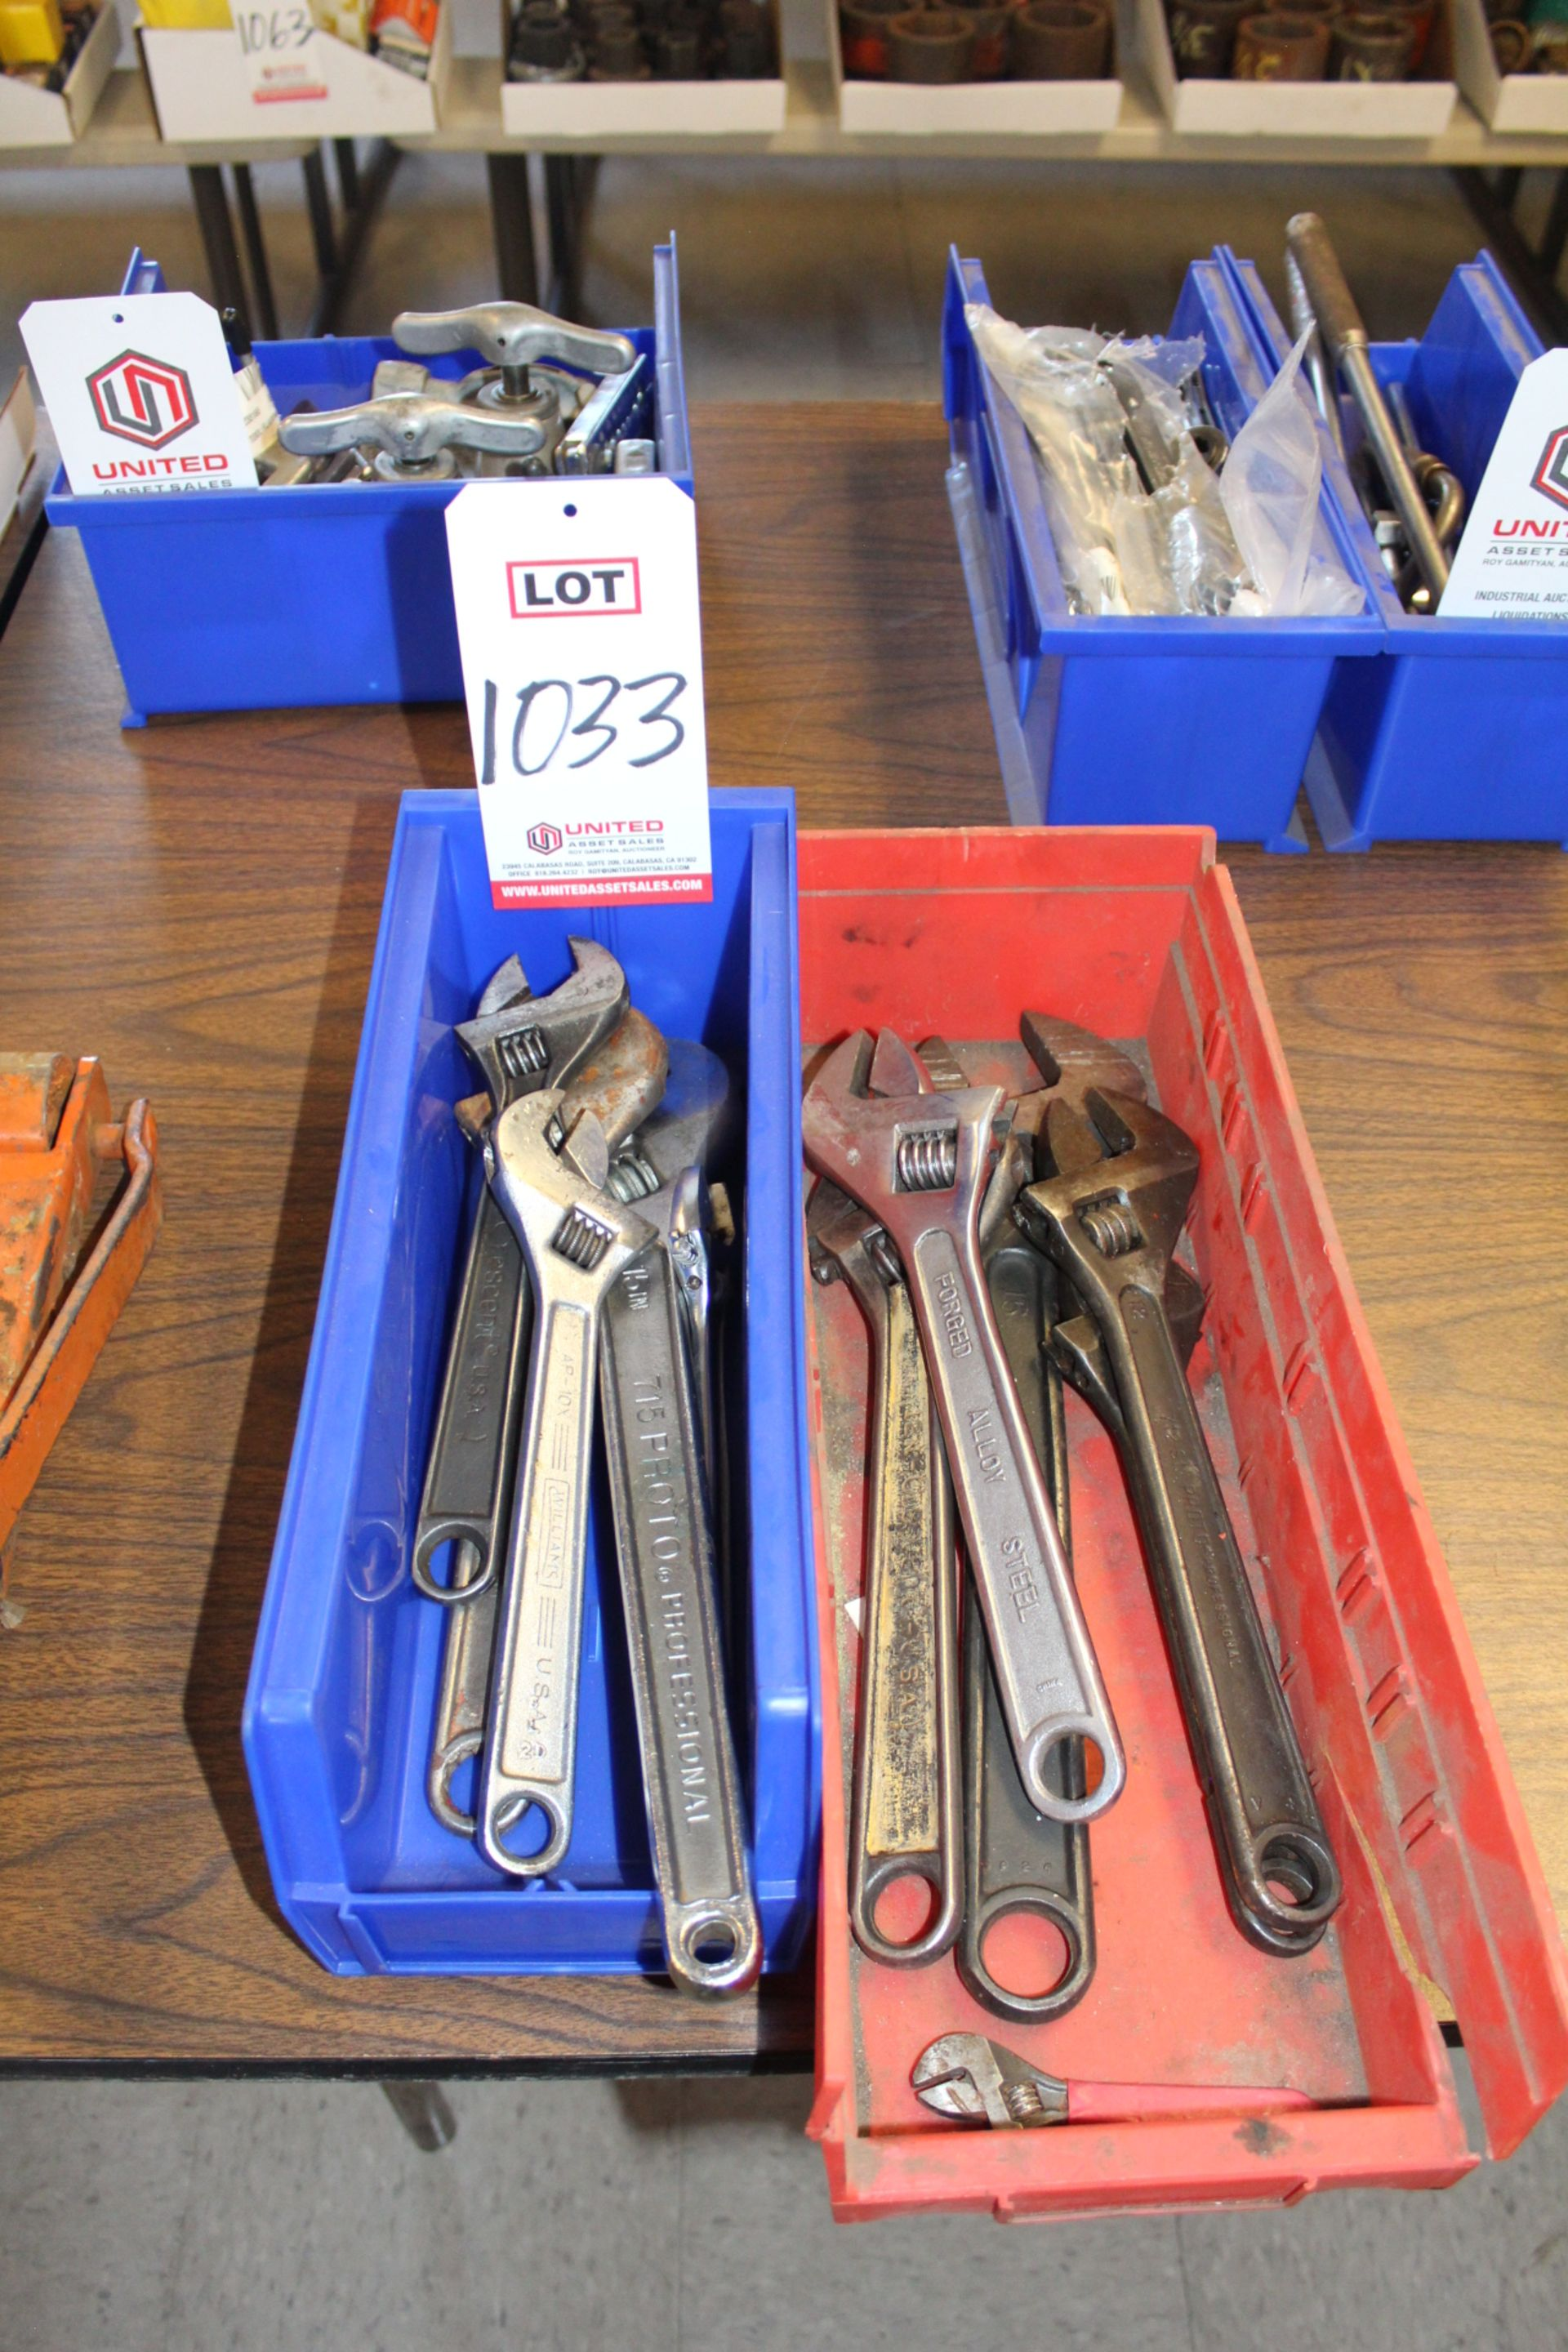 Lot 1033 - LOT - ADJUSTABLE WRENCHES, (LUNCHROOM)